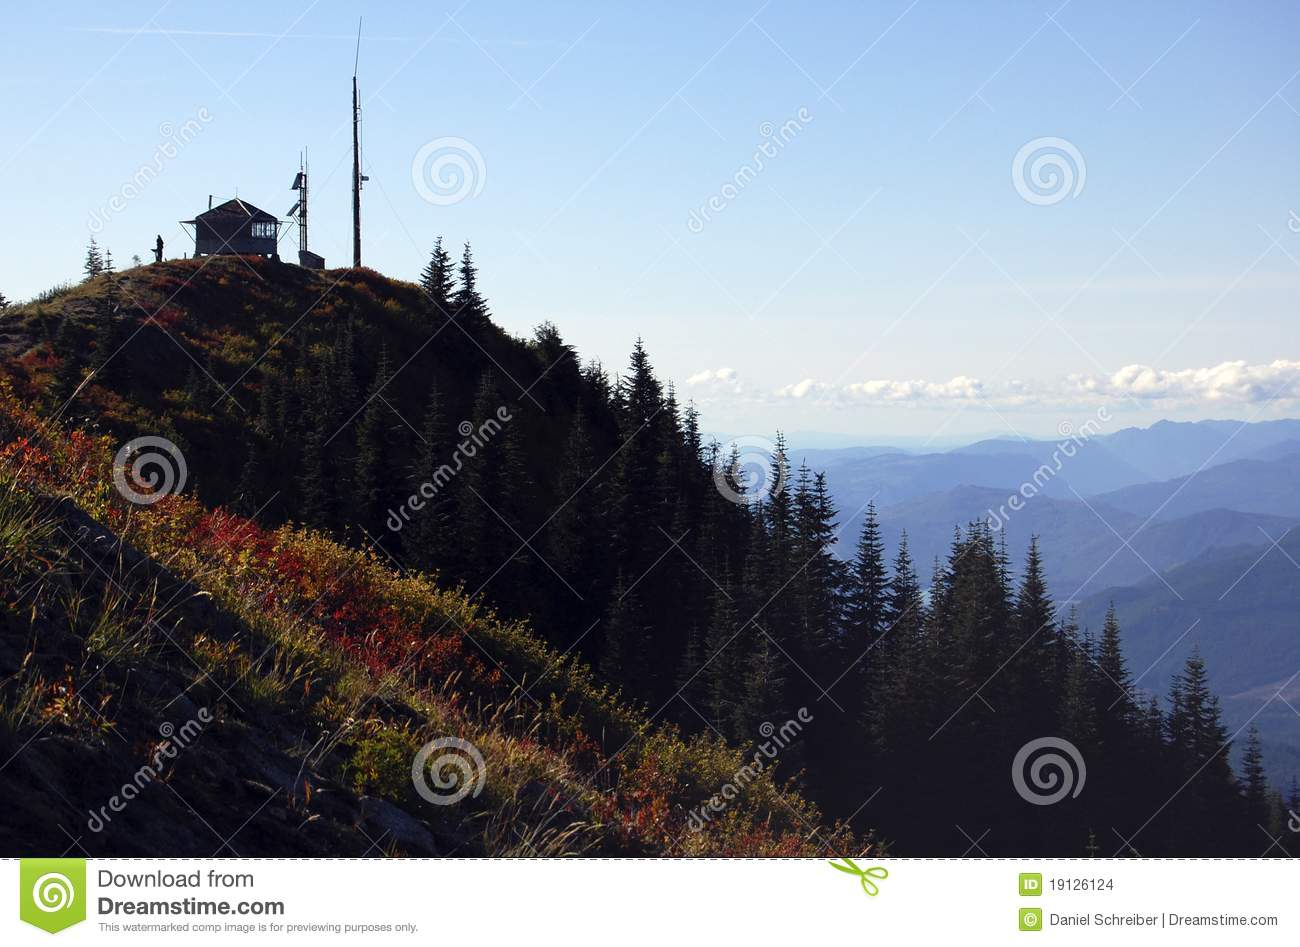 Burley (ID) United States  city photo : Burley Mountain Fire Lookout, Washington state, Gifford Pinchot ...